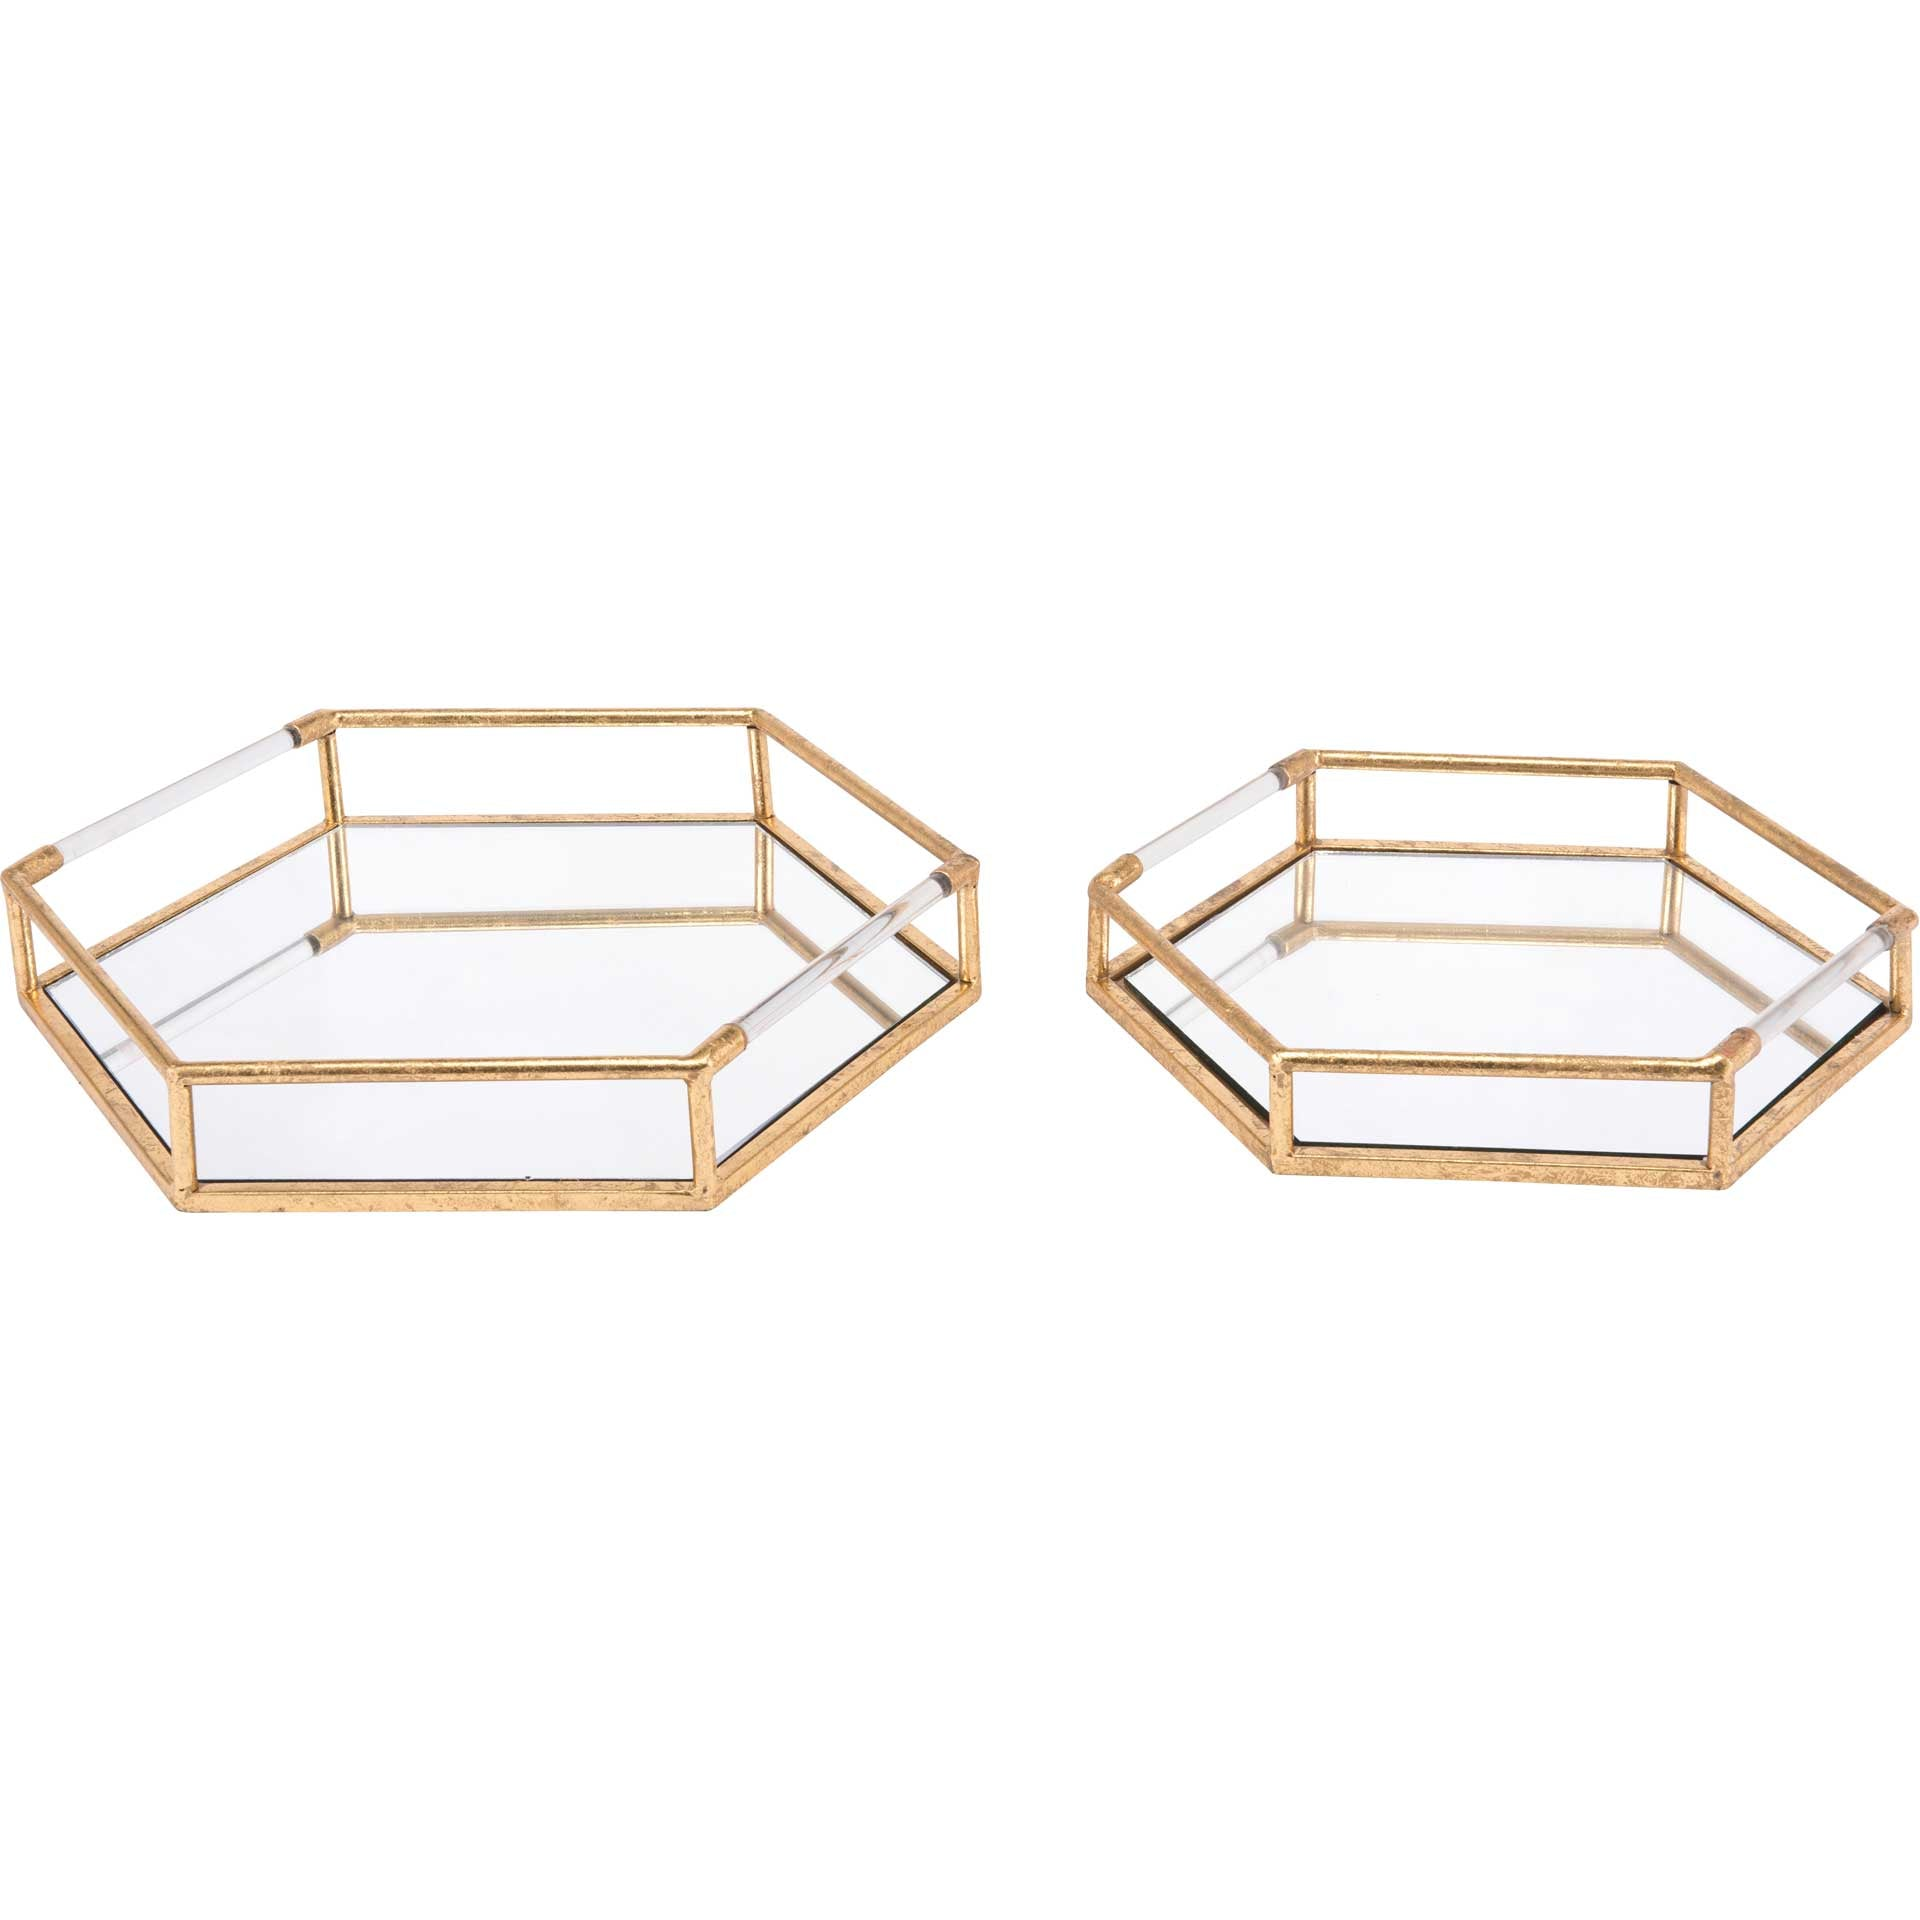 Hexagon Tray Gold (Set of 2)